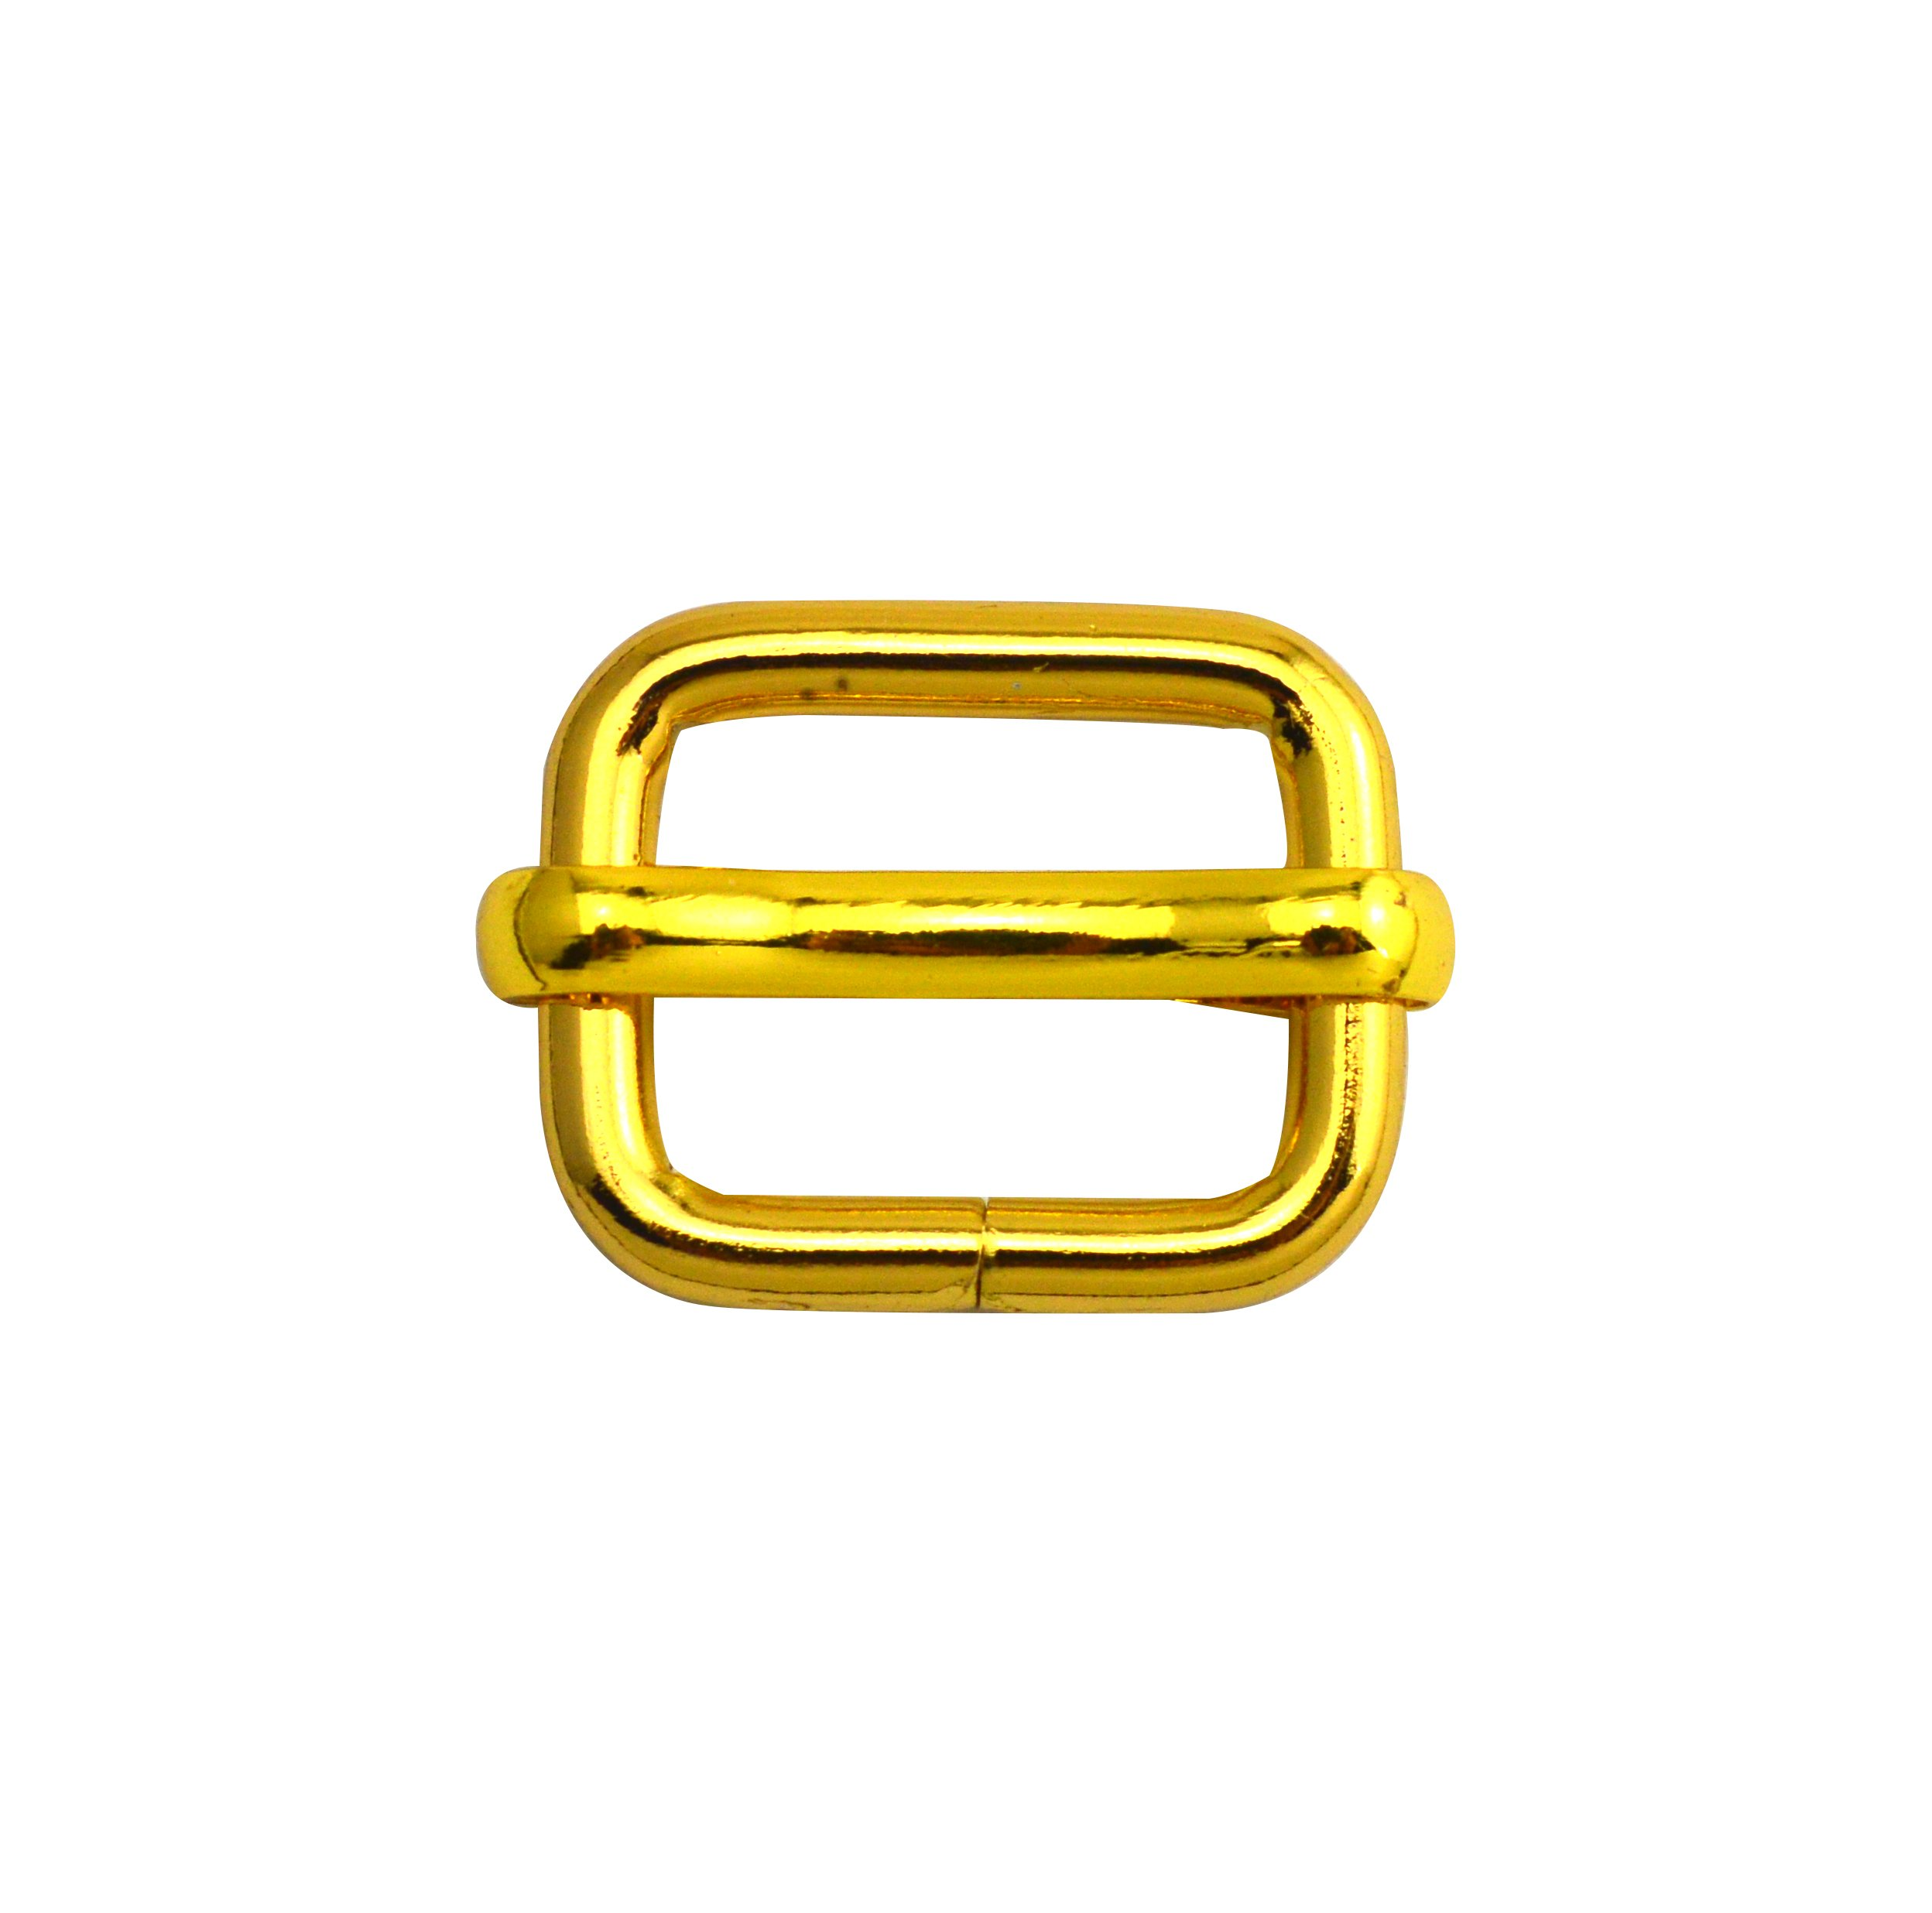 Wuuycoky Golden 0.6'' Inner Length Metal Sliding Bar Tri-Glides Wire-Formed Roller Pin Buckles Slider Pack of 10